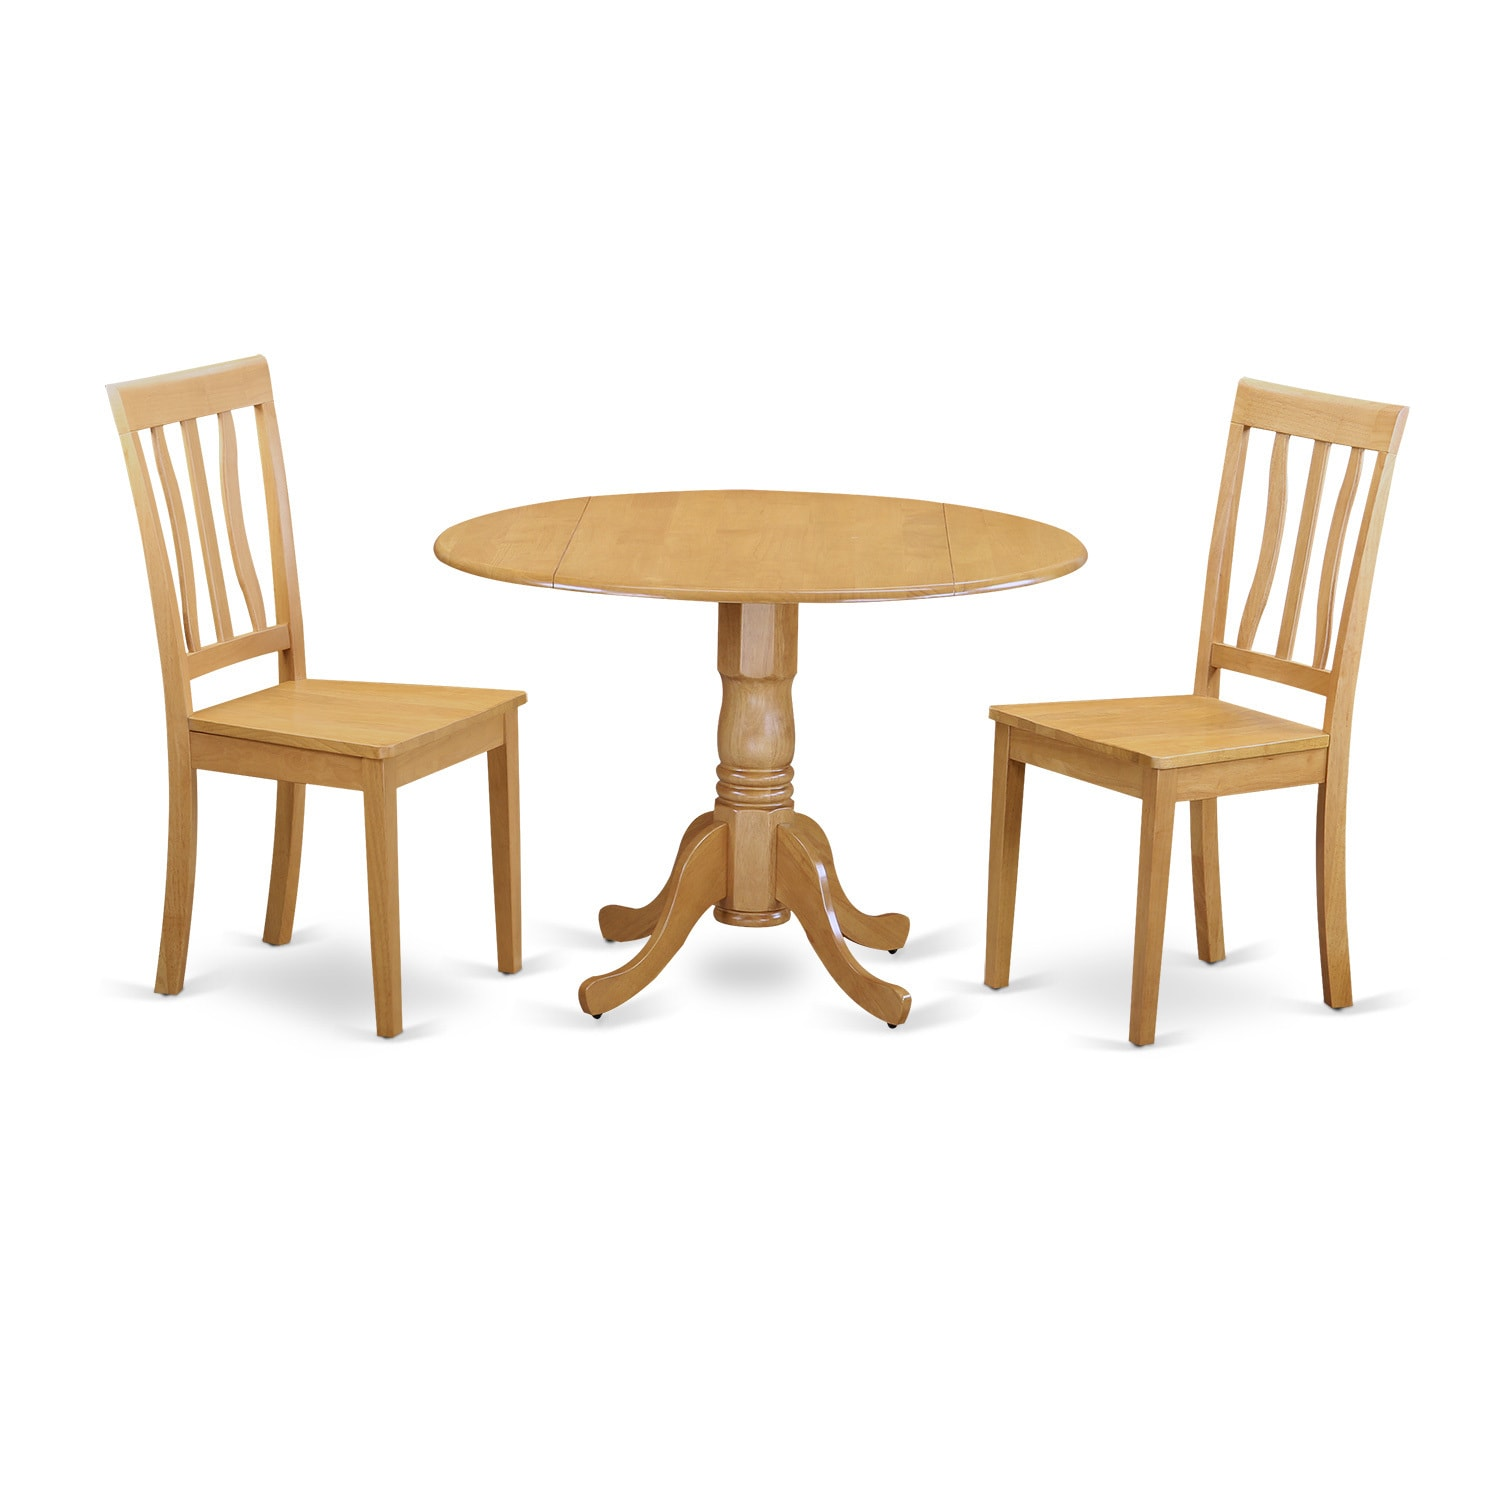 3 piece dinette set cheap kitchendinette3piecediningtableandchairs kitchen dinette 3piece dining table and chairs set ebay